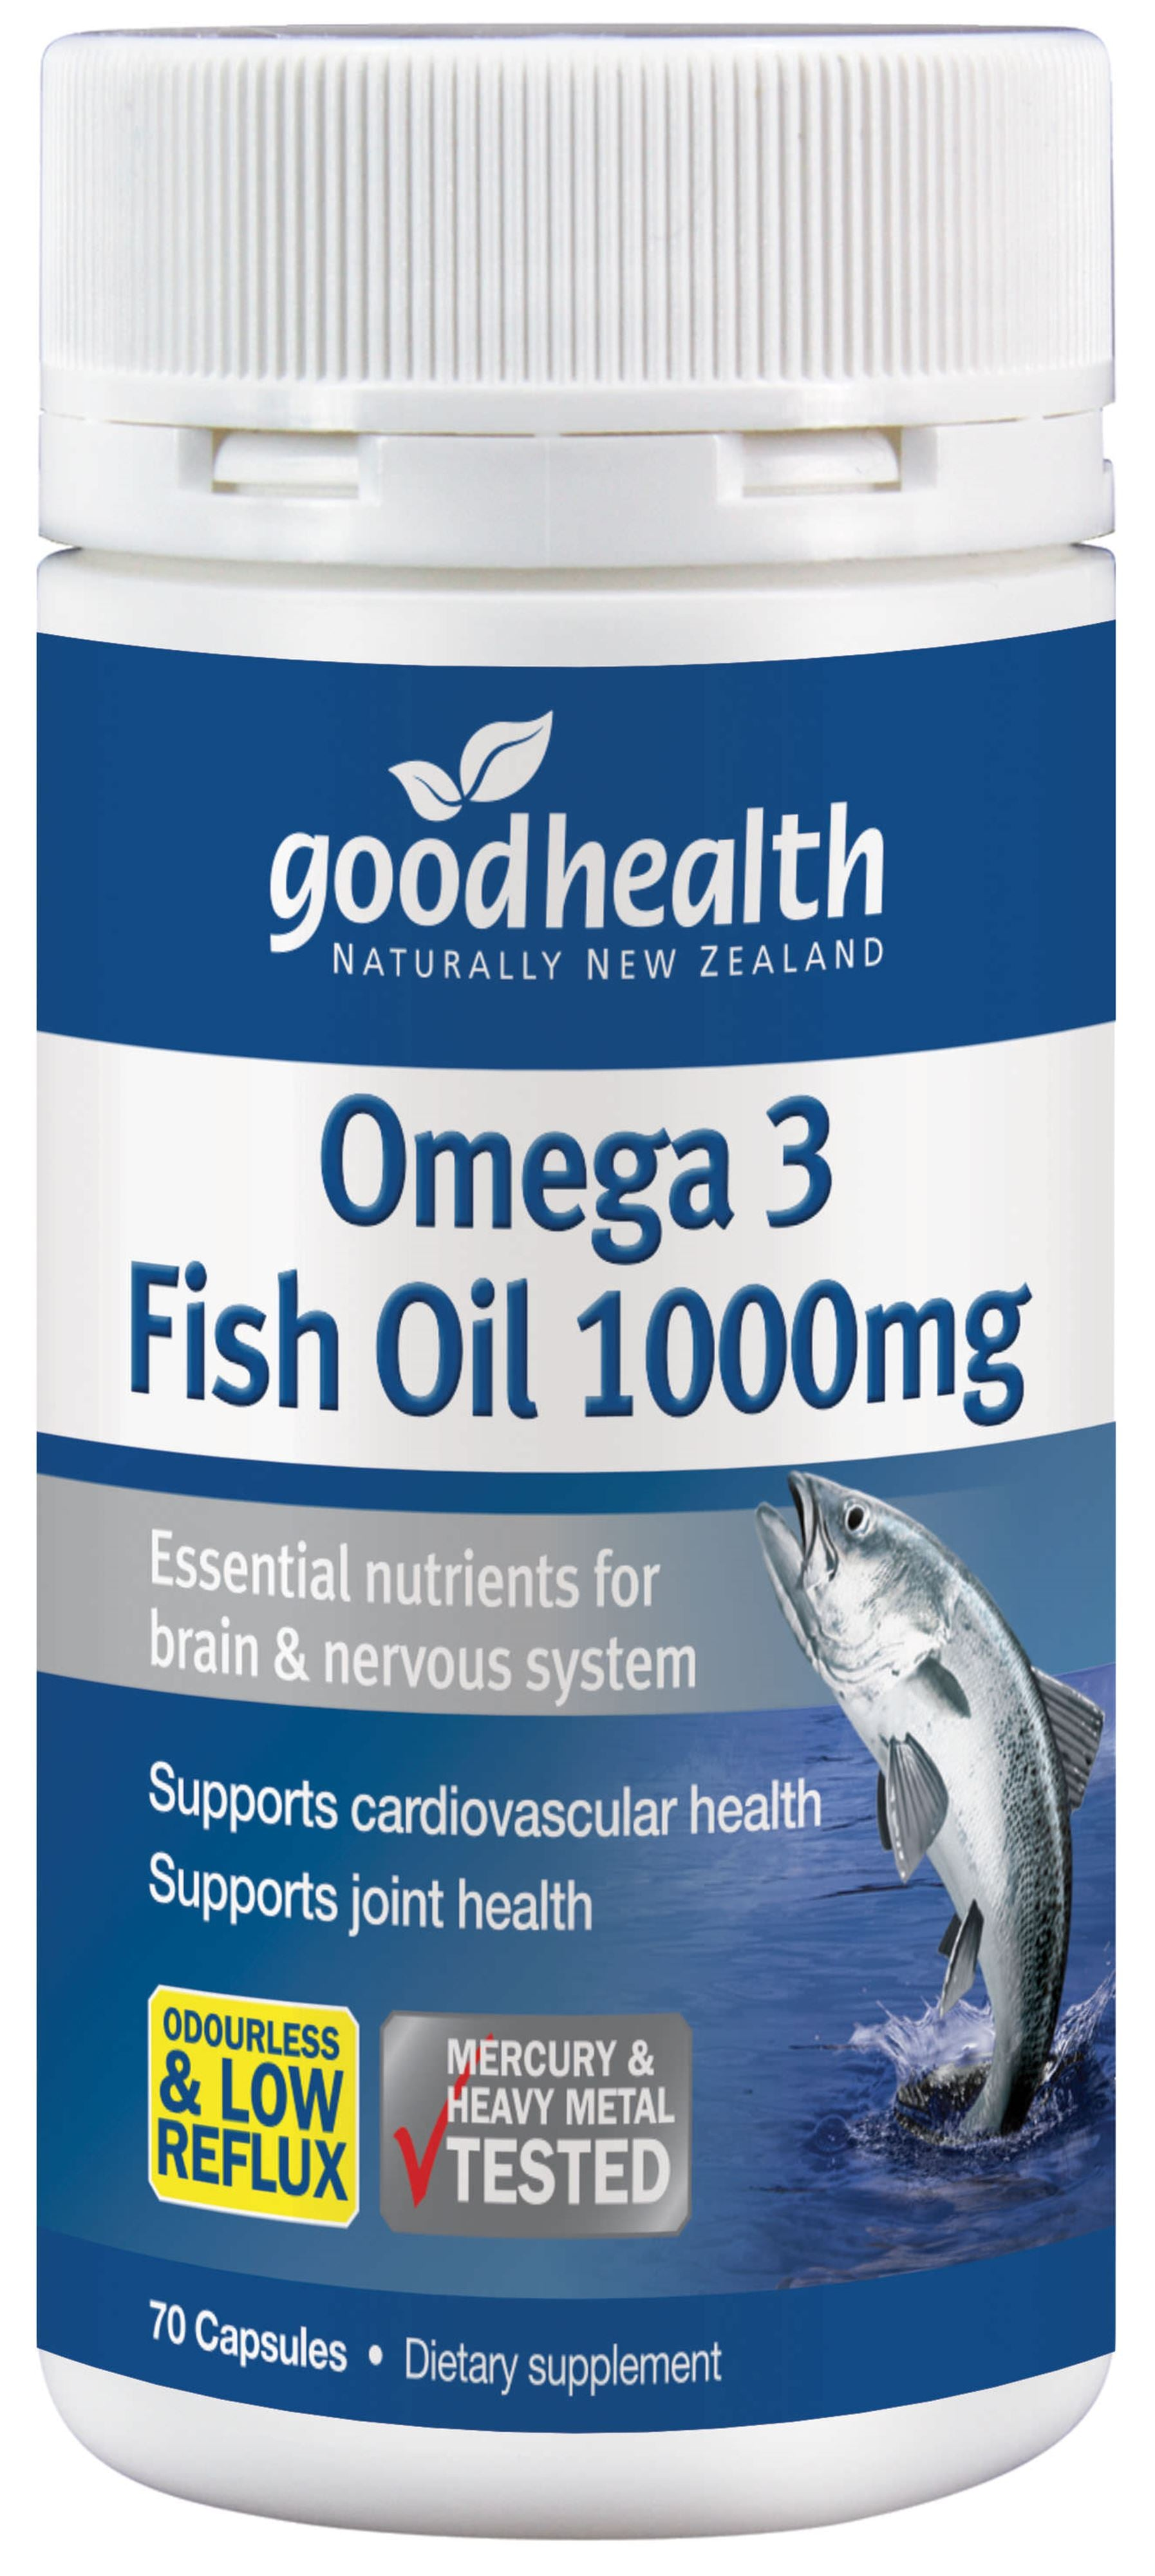 Omega 3 Fish Oil 1000mg - 70 Capsules